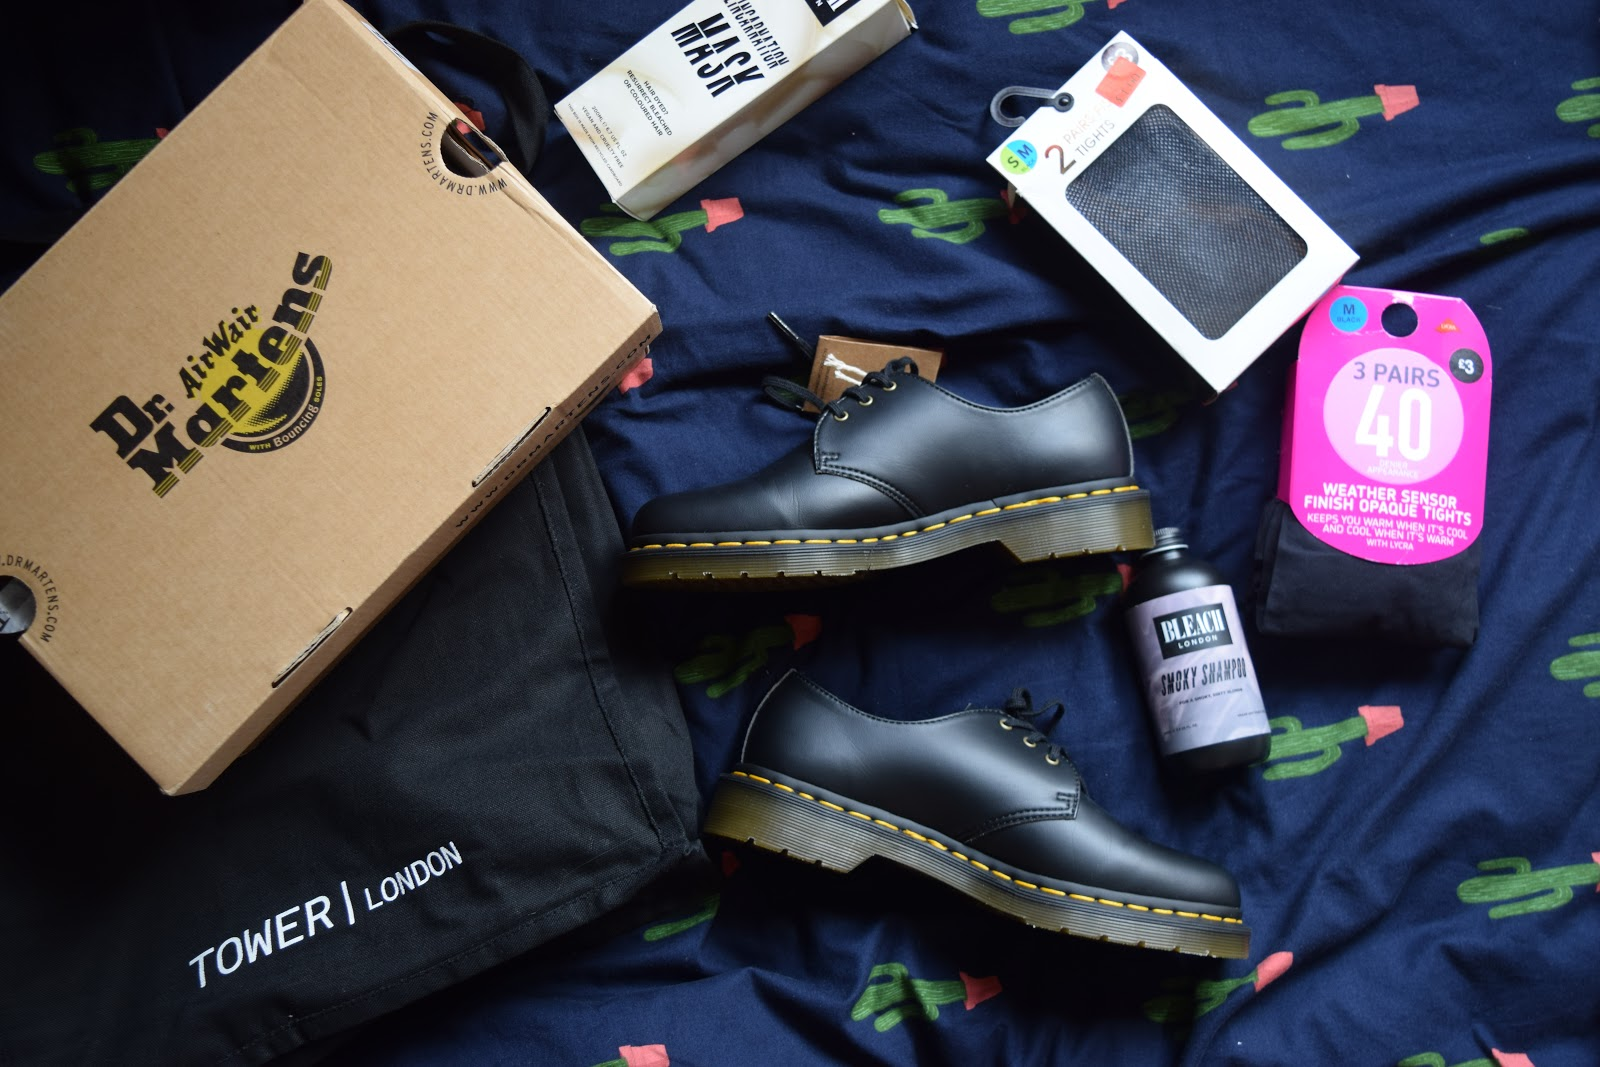 flatlay of Dr Martens 1461 shoes, tights and Bleach London products